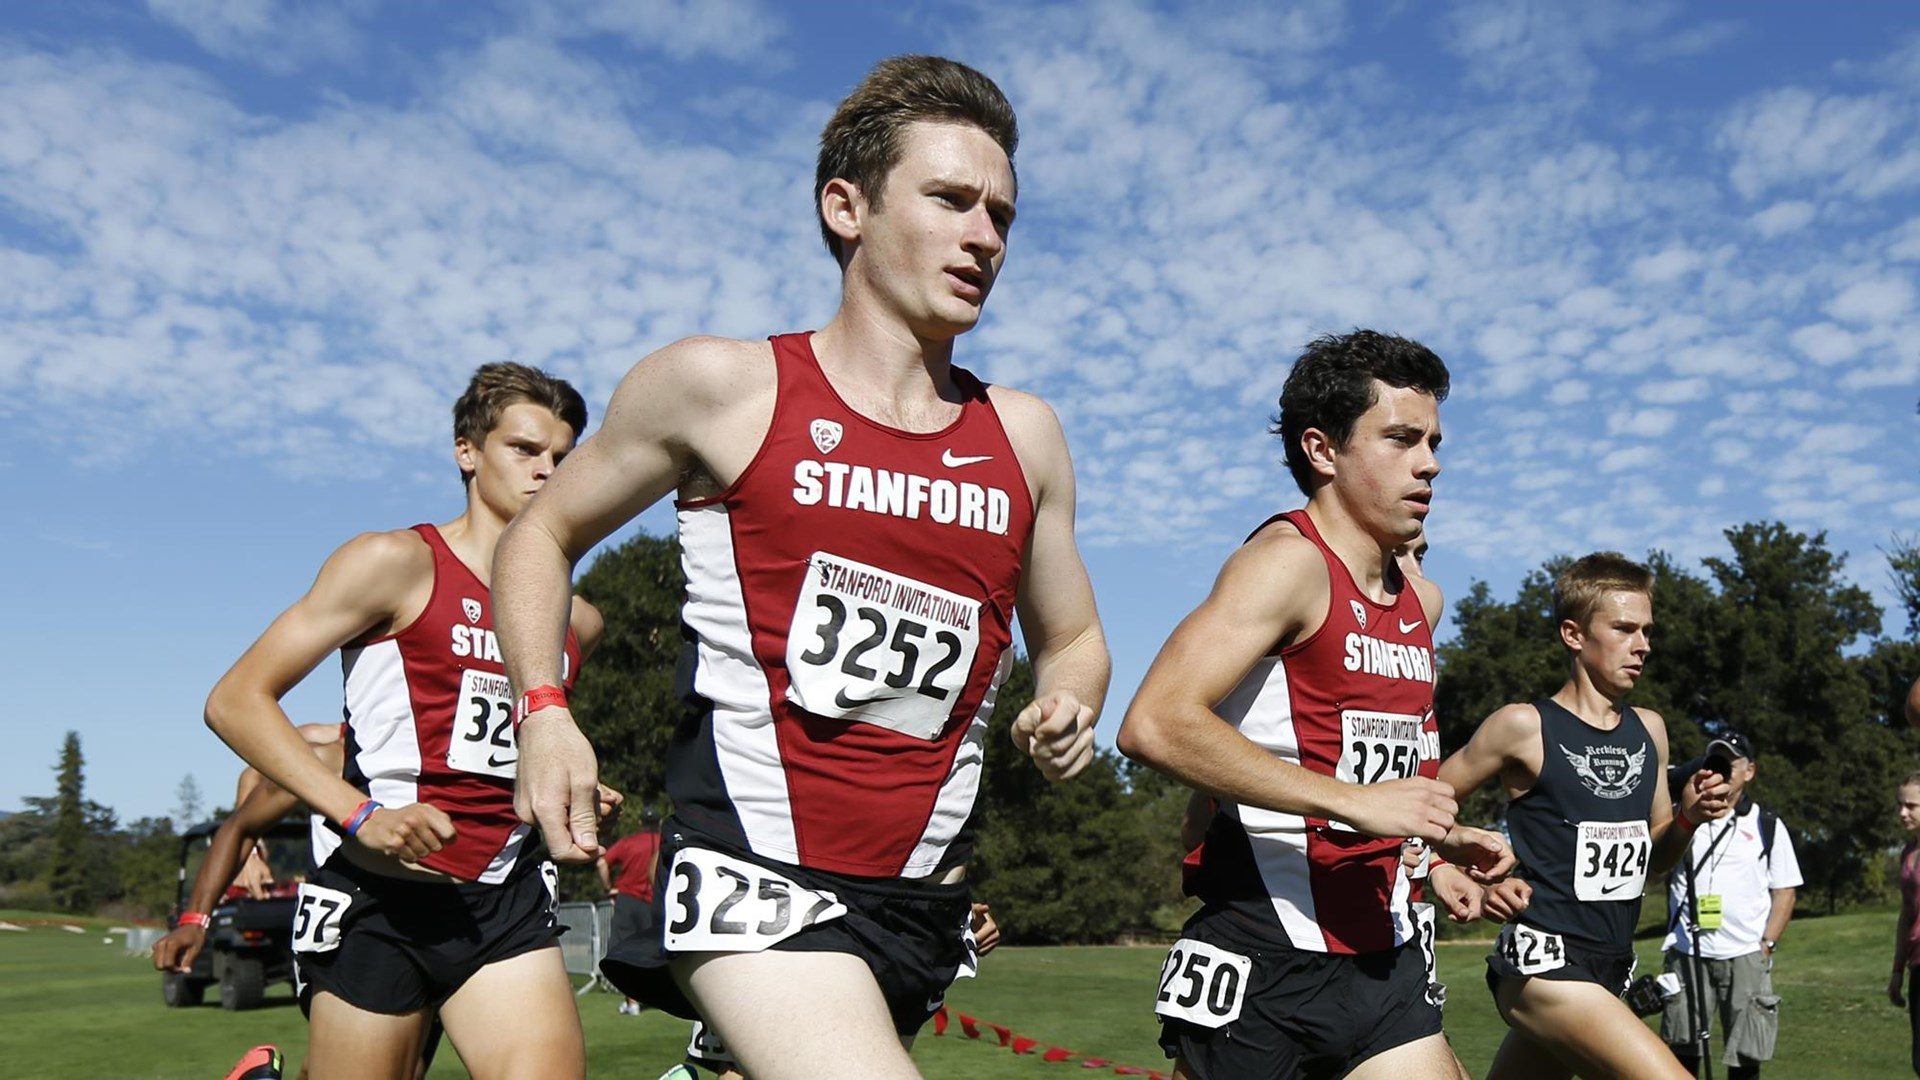 Runners Converge on Stanford